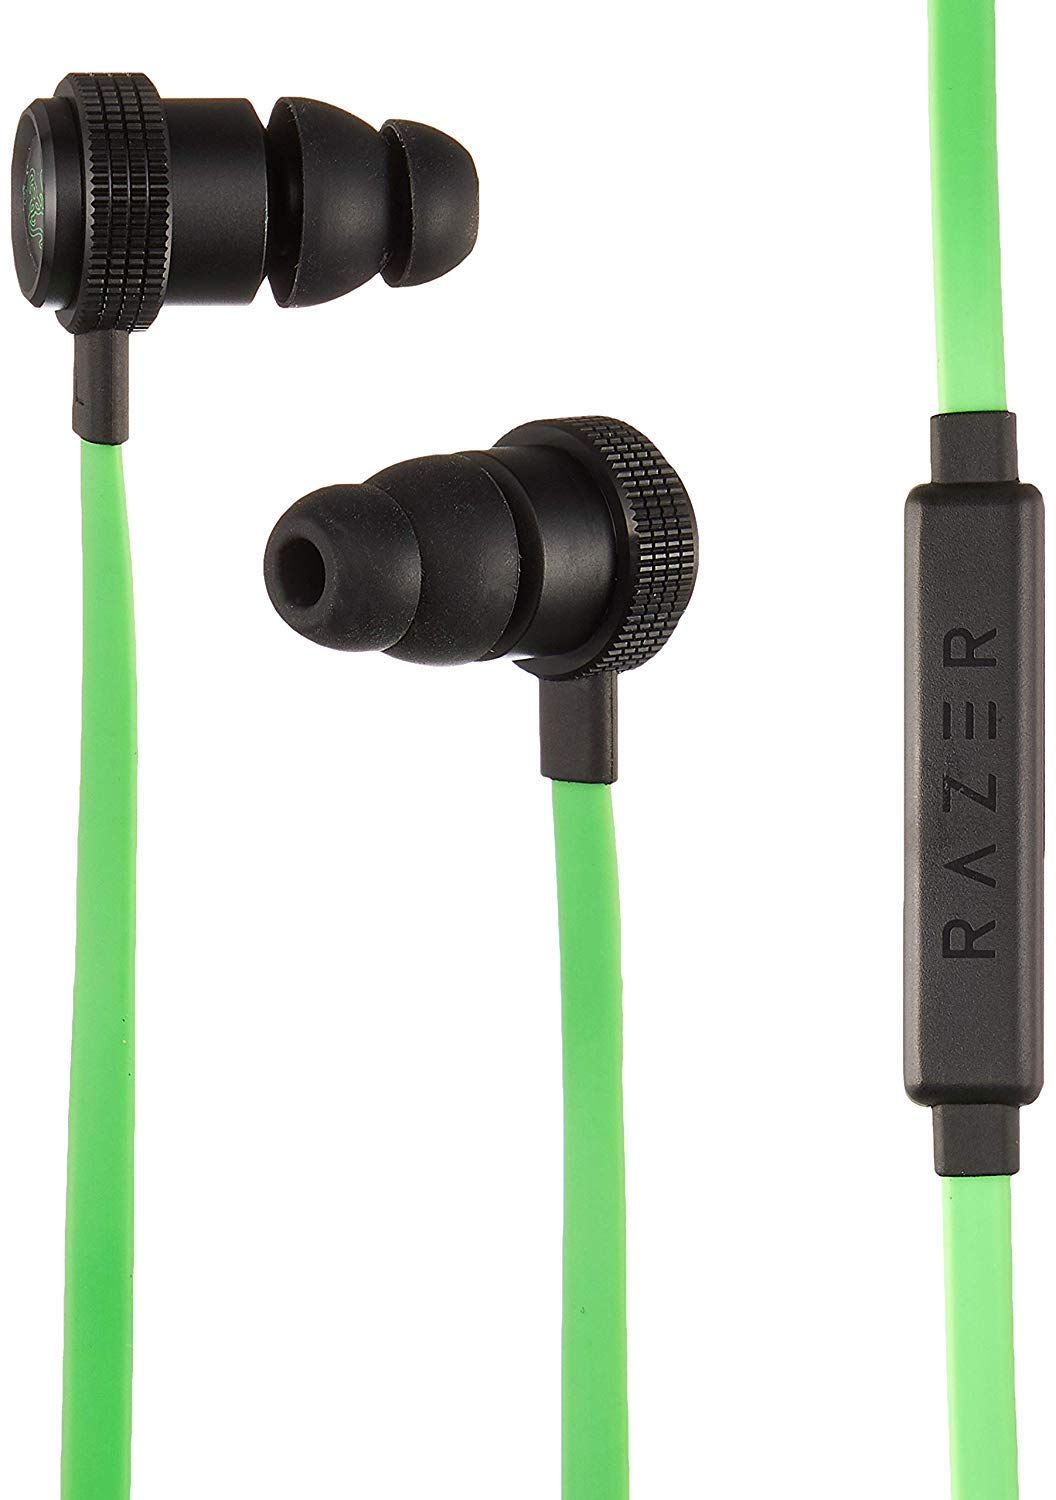 Razer Hammerhead Pro v2 Earbuds - [Green]: Custom-Tuned Dual-Driver  Technology - In-Line Mic & Volume Control - Aluminum Frame - 3 5mm  Headphone Jack